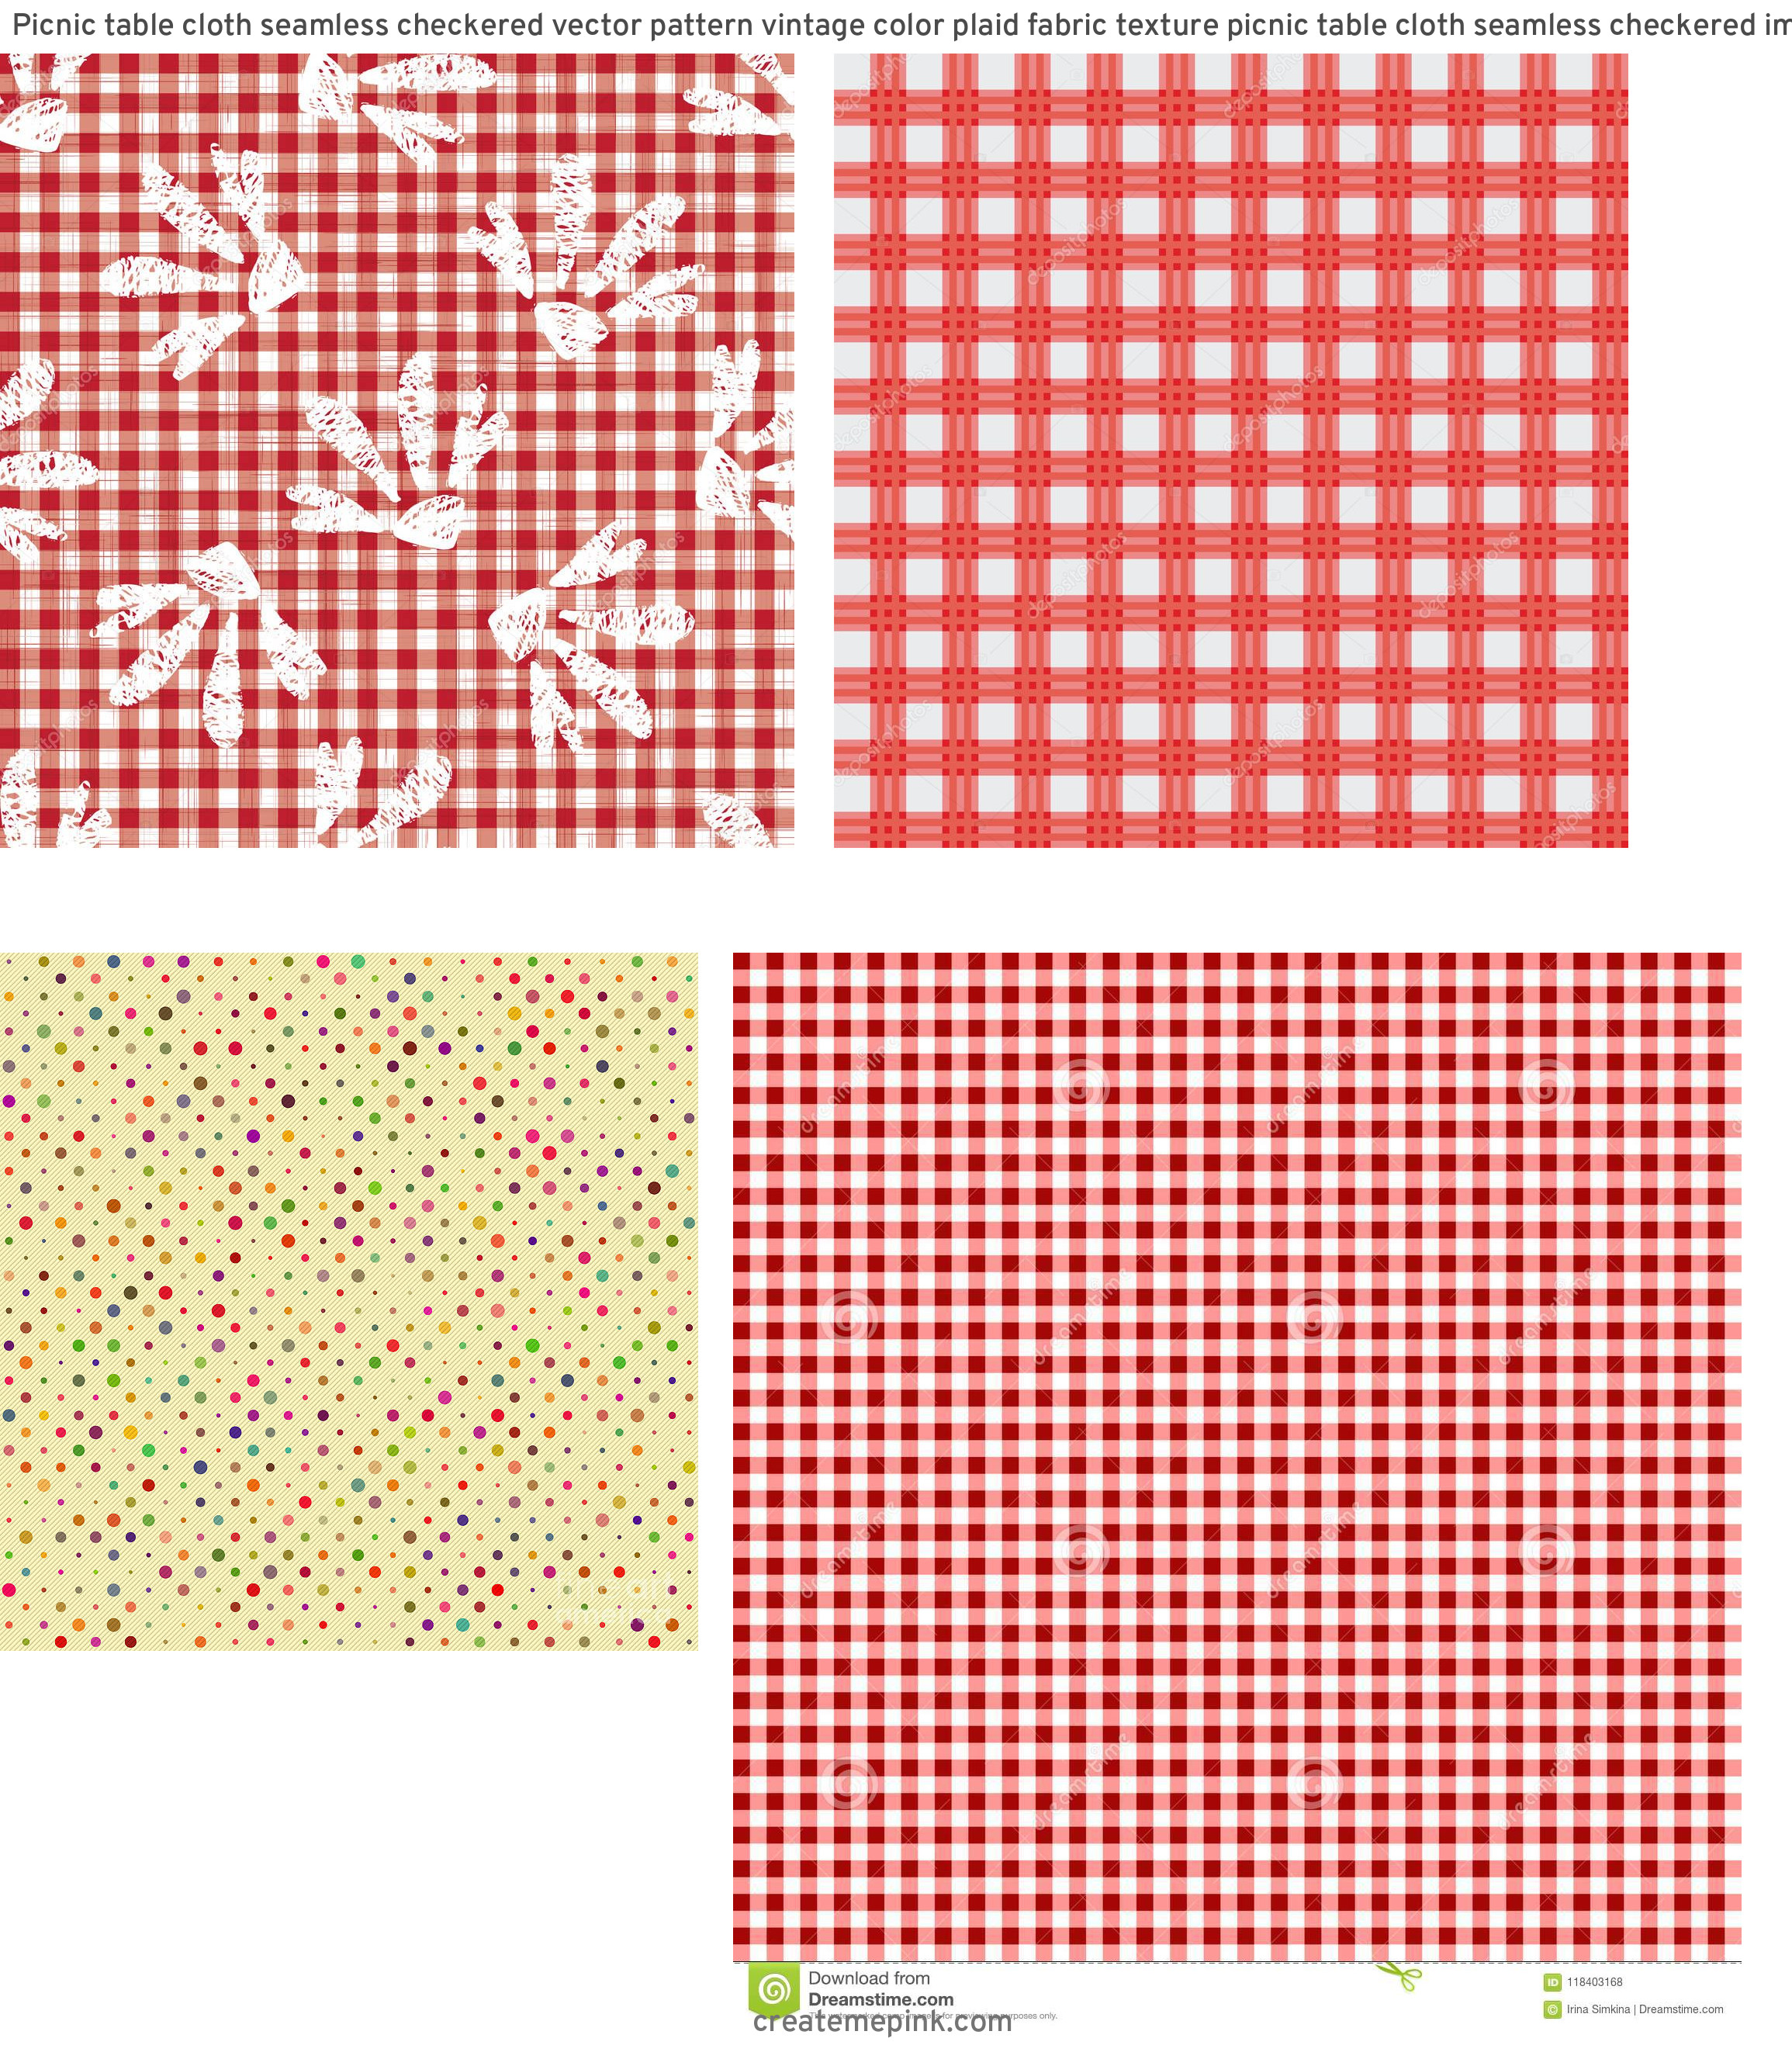 Picnic Cloth Vector: Picnic Table Cloth Seamless Checkered Vector Pattern Vintage Color Plaid Fabric Texture Picnic Table Cloth Seamless Checkered Image